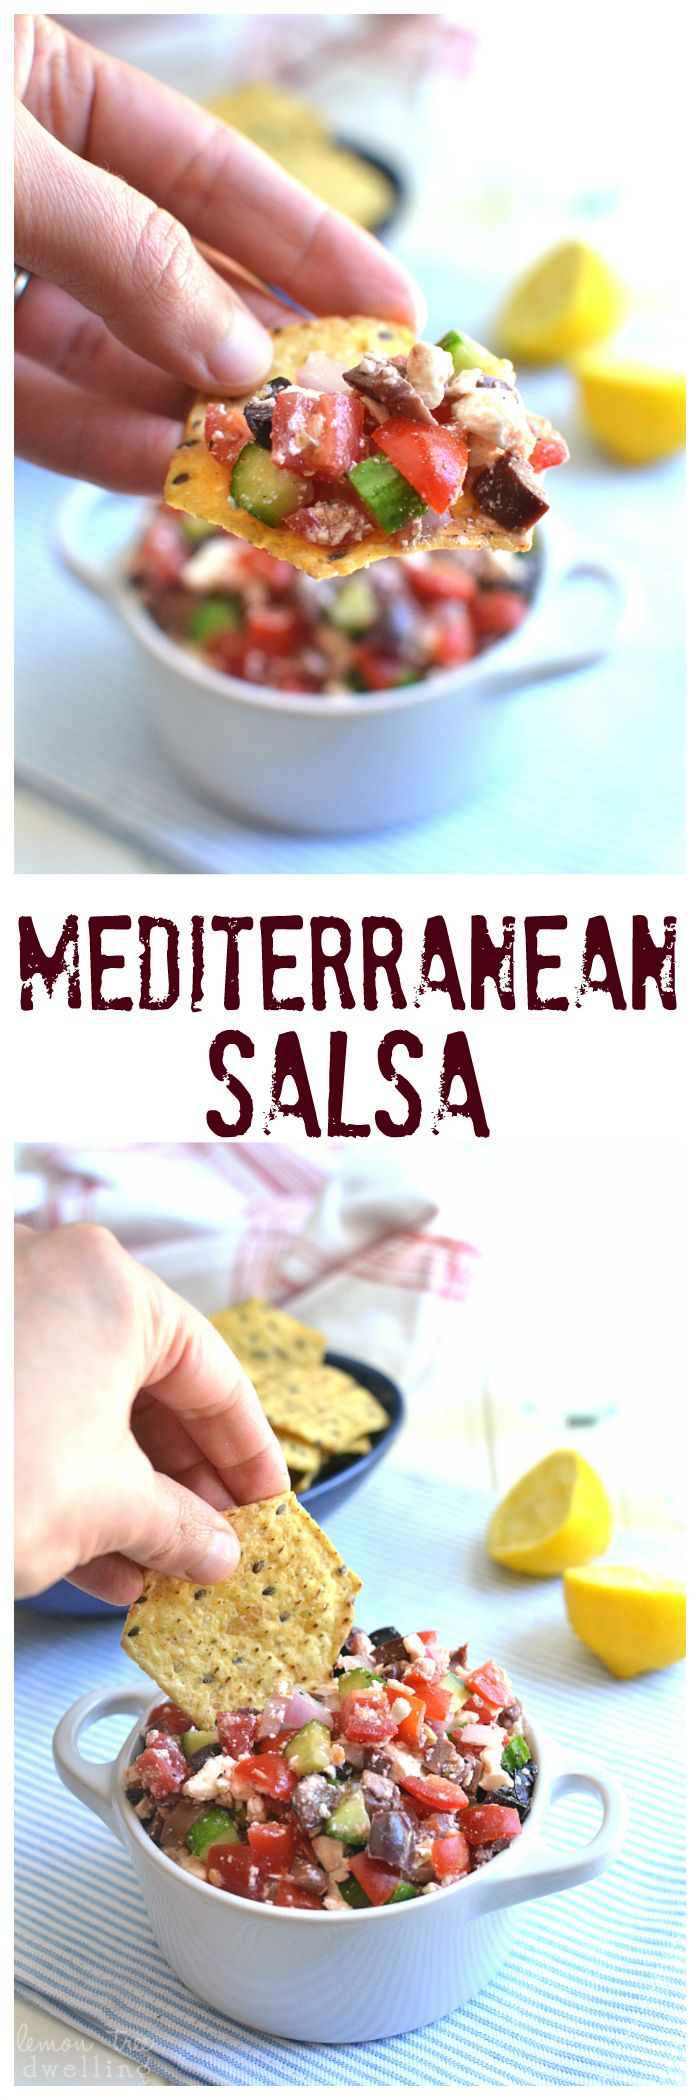 Mediterranean Salsa - all the flavors of Greek Salad, in a delicious dip that's perfect with tortilla chips! @fstgchips #sponsored